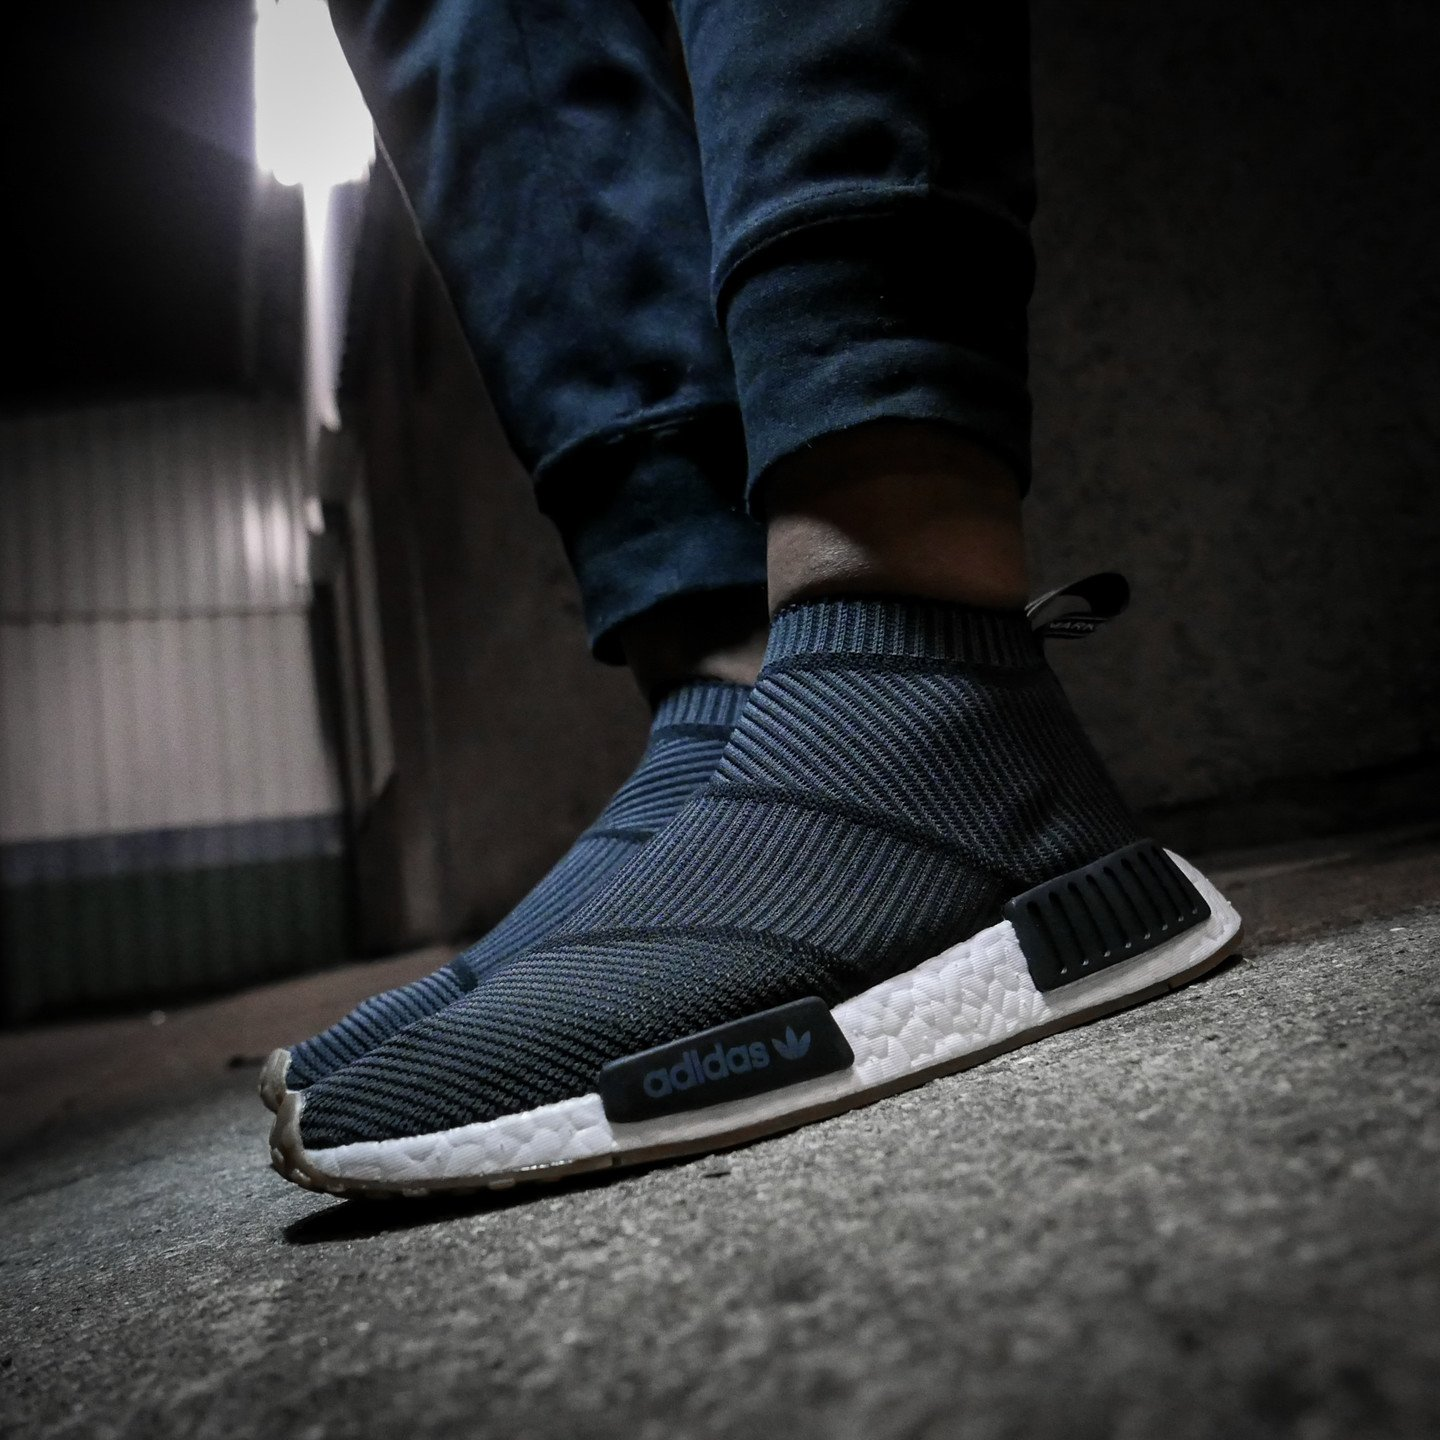 Adidas NMD CS1 City Sock Boost Primeknit Core Black / Gum BA7209-37.33